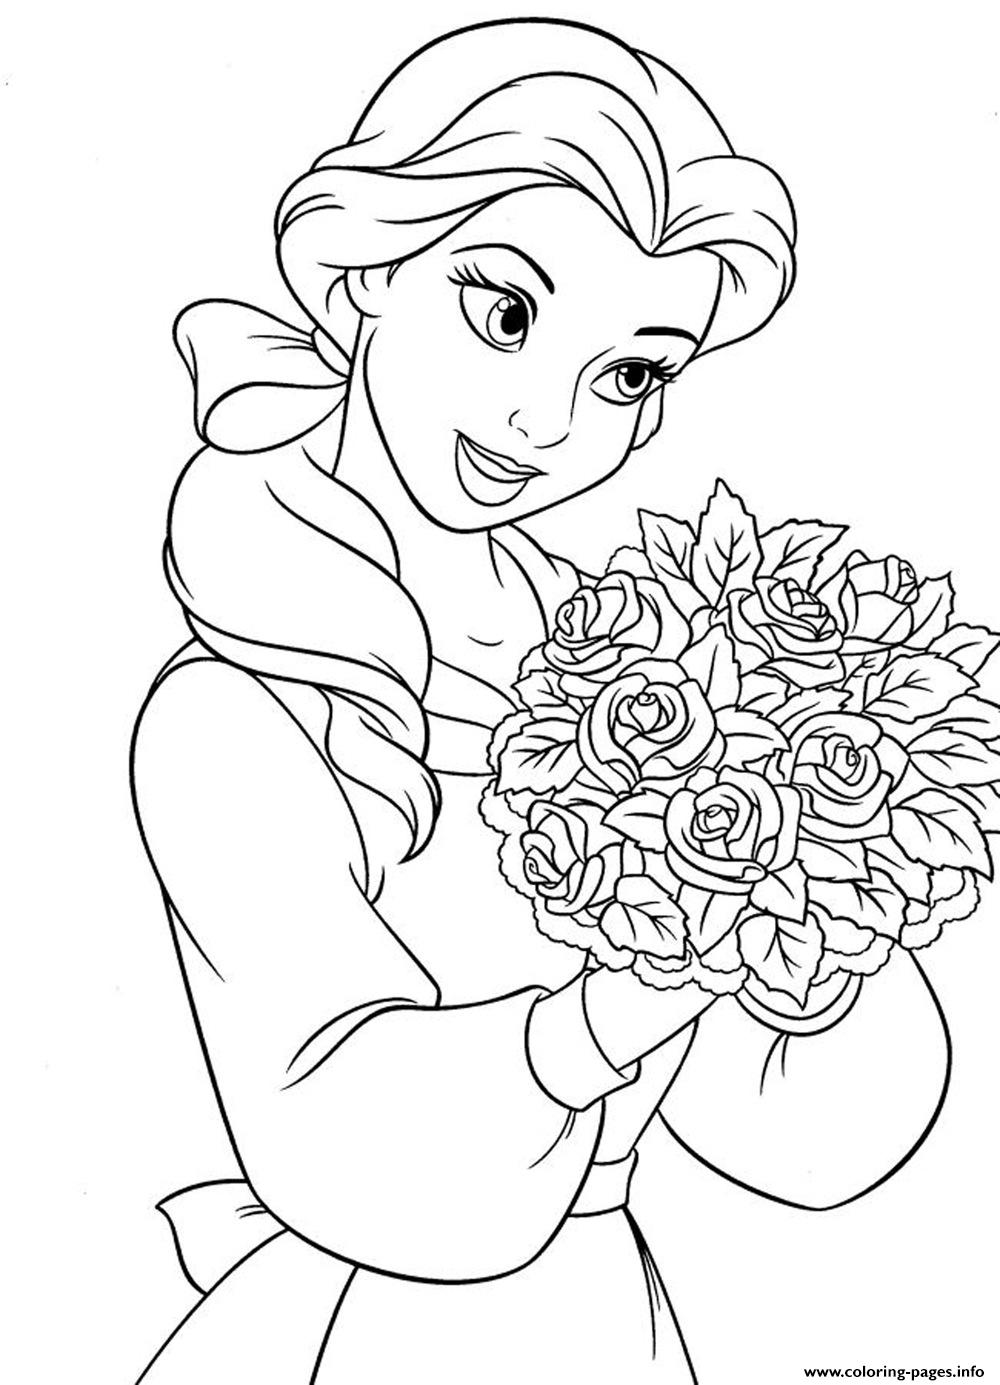 Cute Princess For Girls Coloring Pages Printable